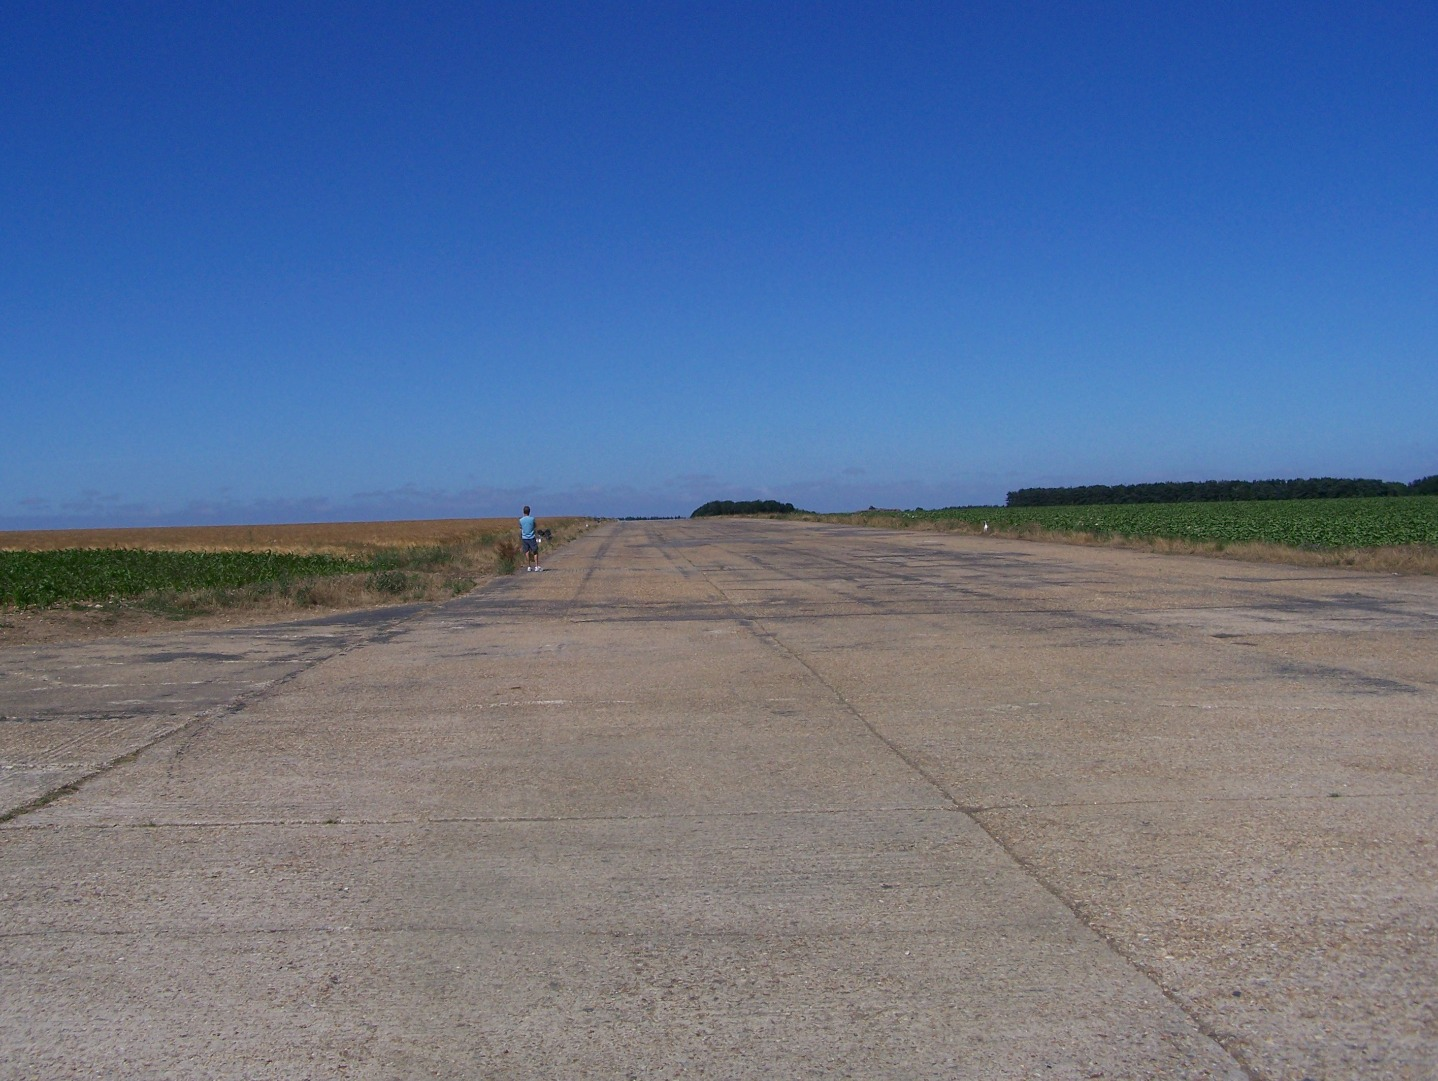 South-west end of 04:22 runway, measuring 1,400 yards, and still partly active 15:07:2006.JPG